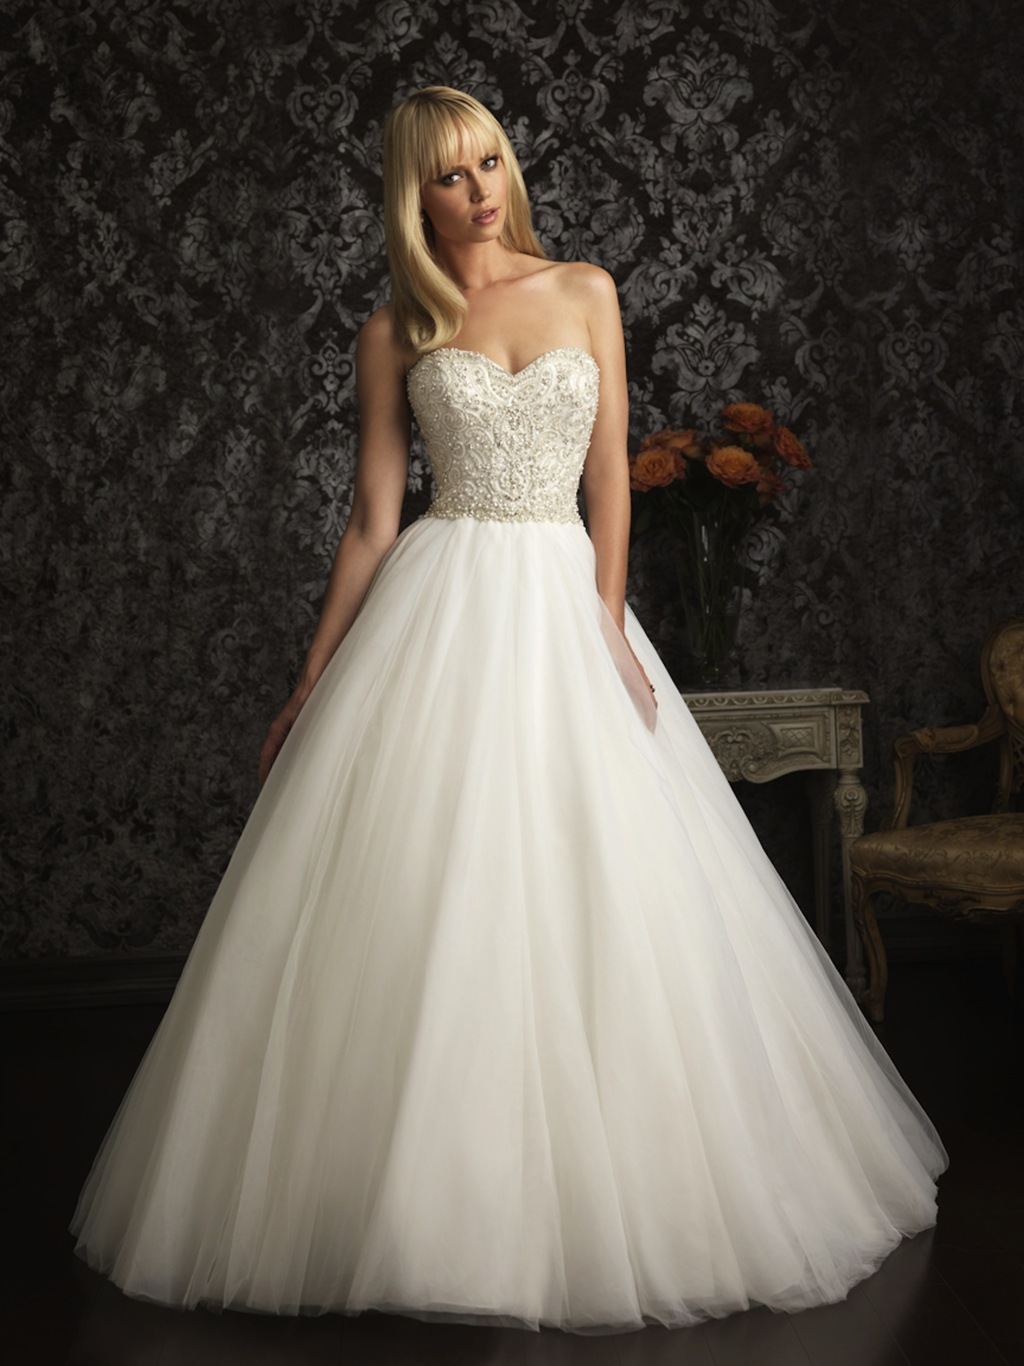 Allure-bridals-wedding-dress-bridal-gown-allure-collection-2013-9006f-2.full